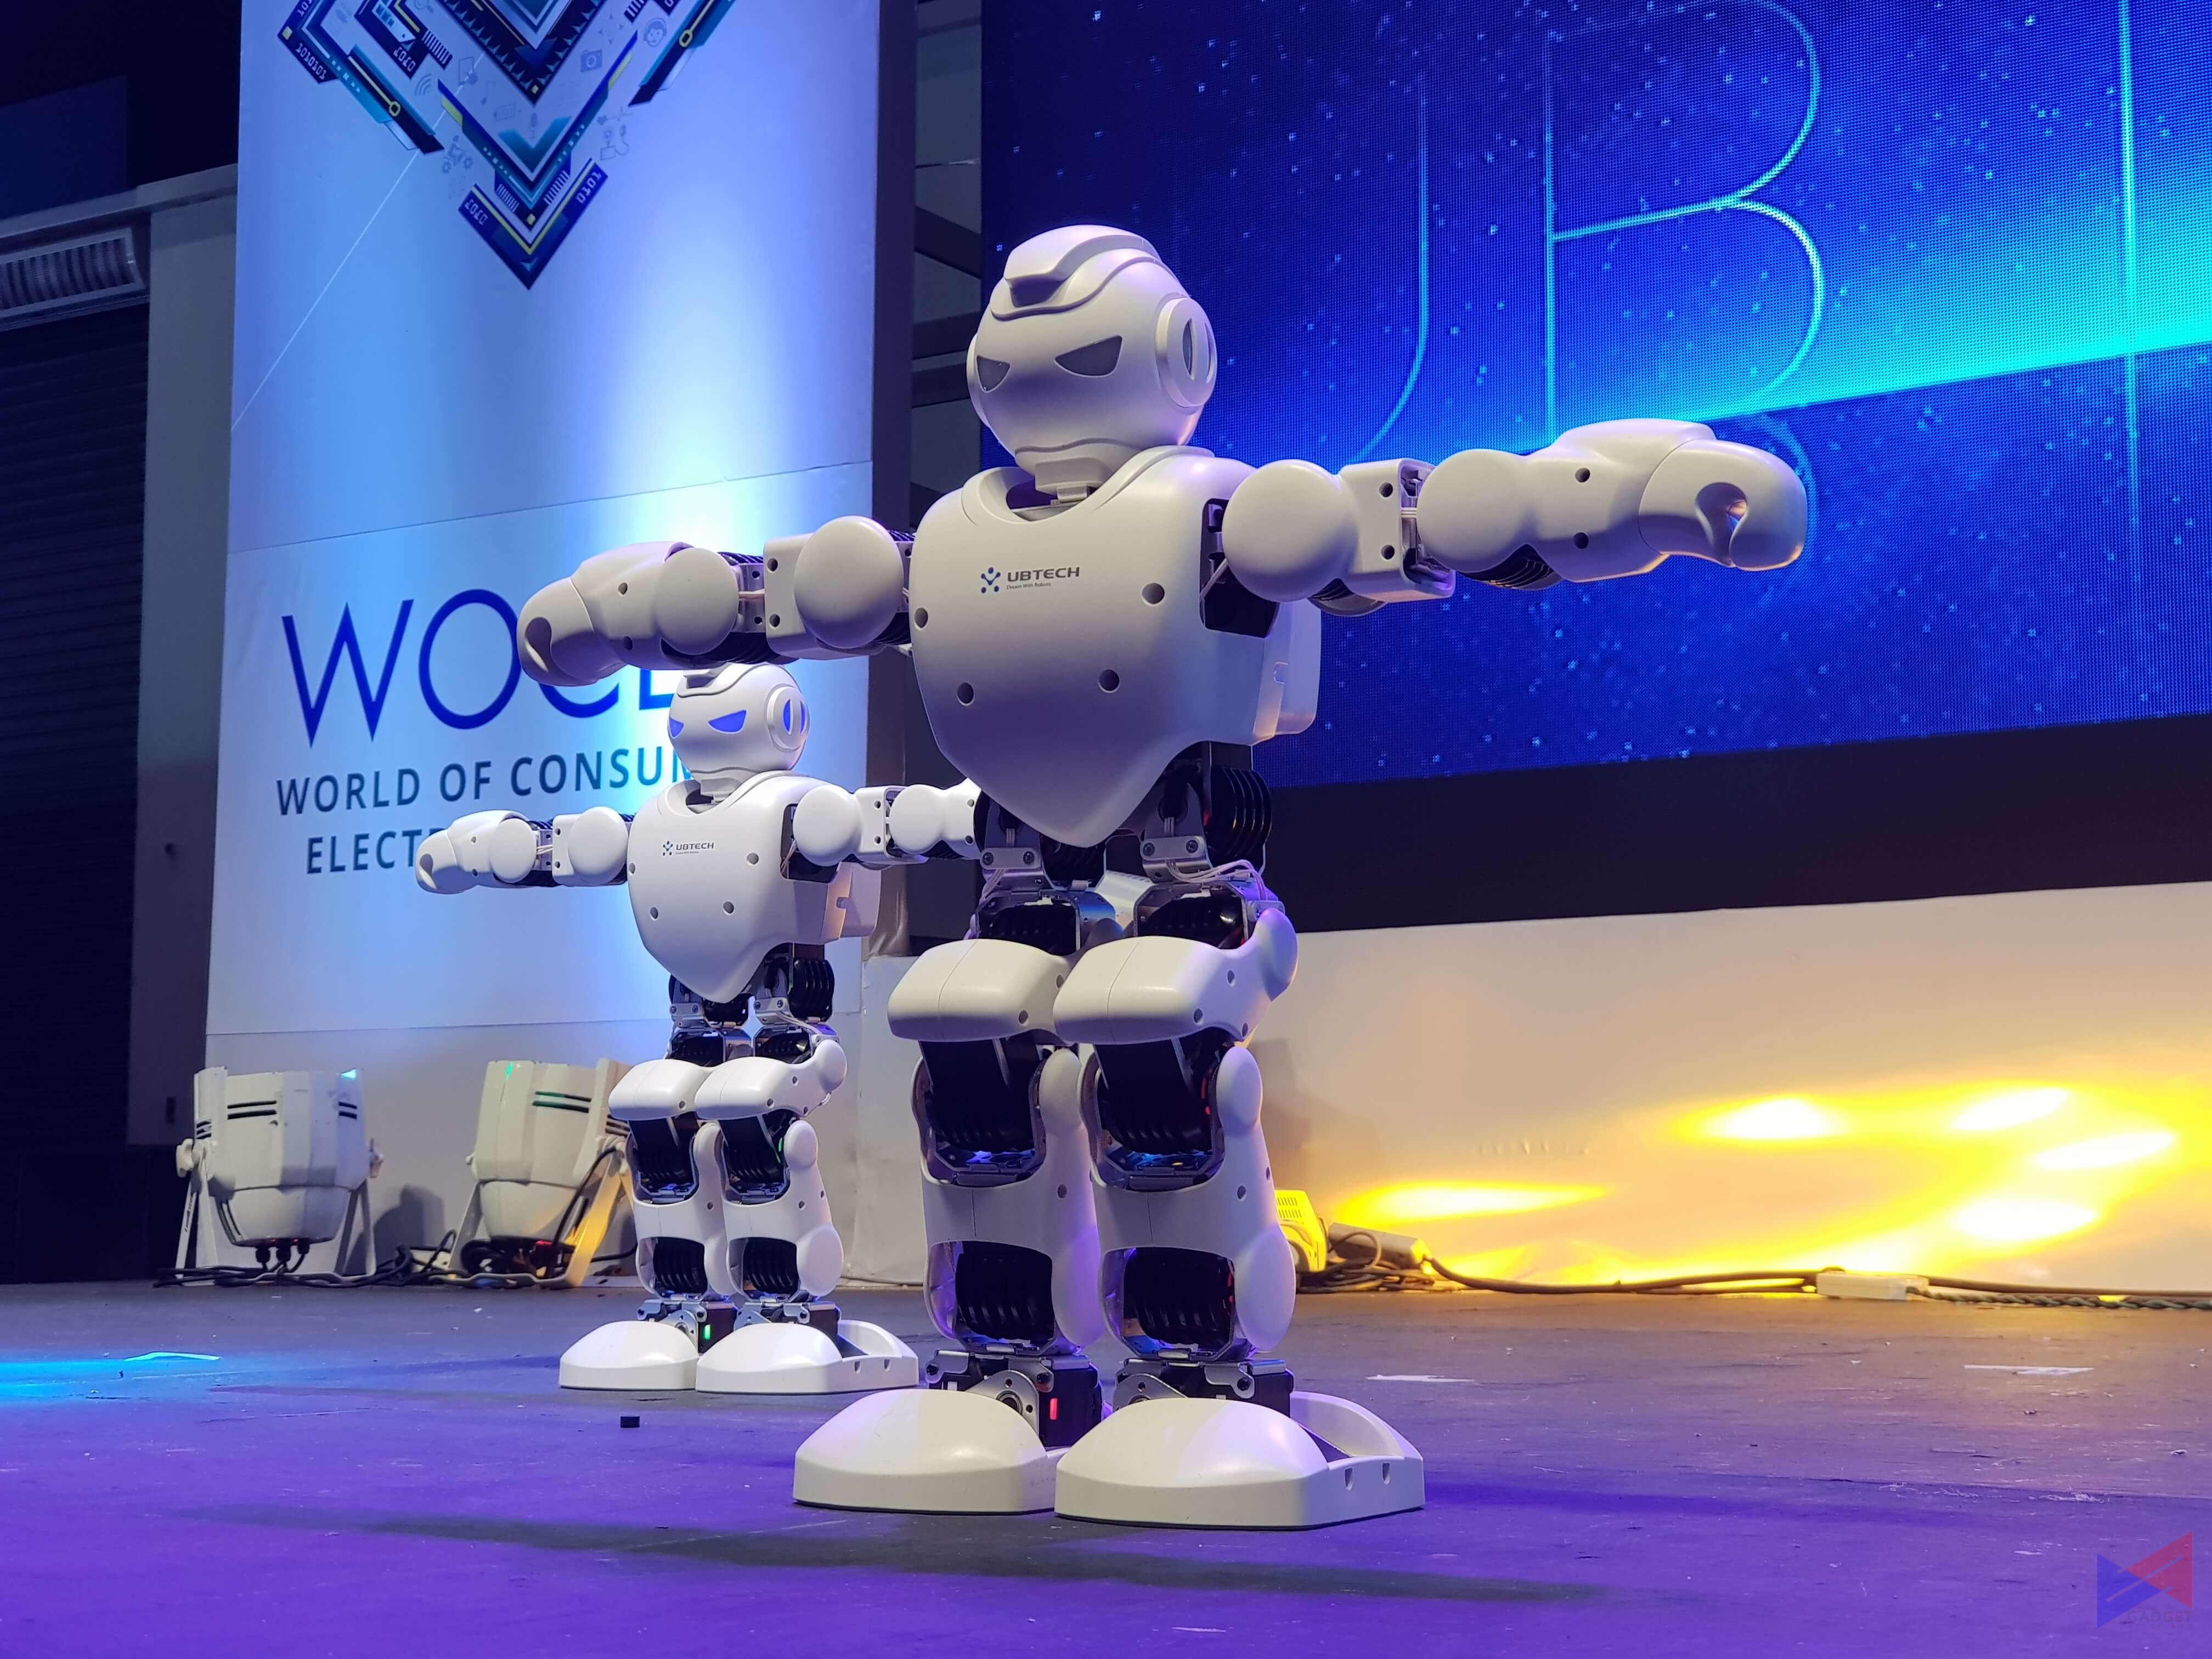 alpha1pro 04 - UBTECH Robotics Launches Alpha 1 Pro Robot in PH